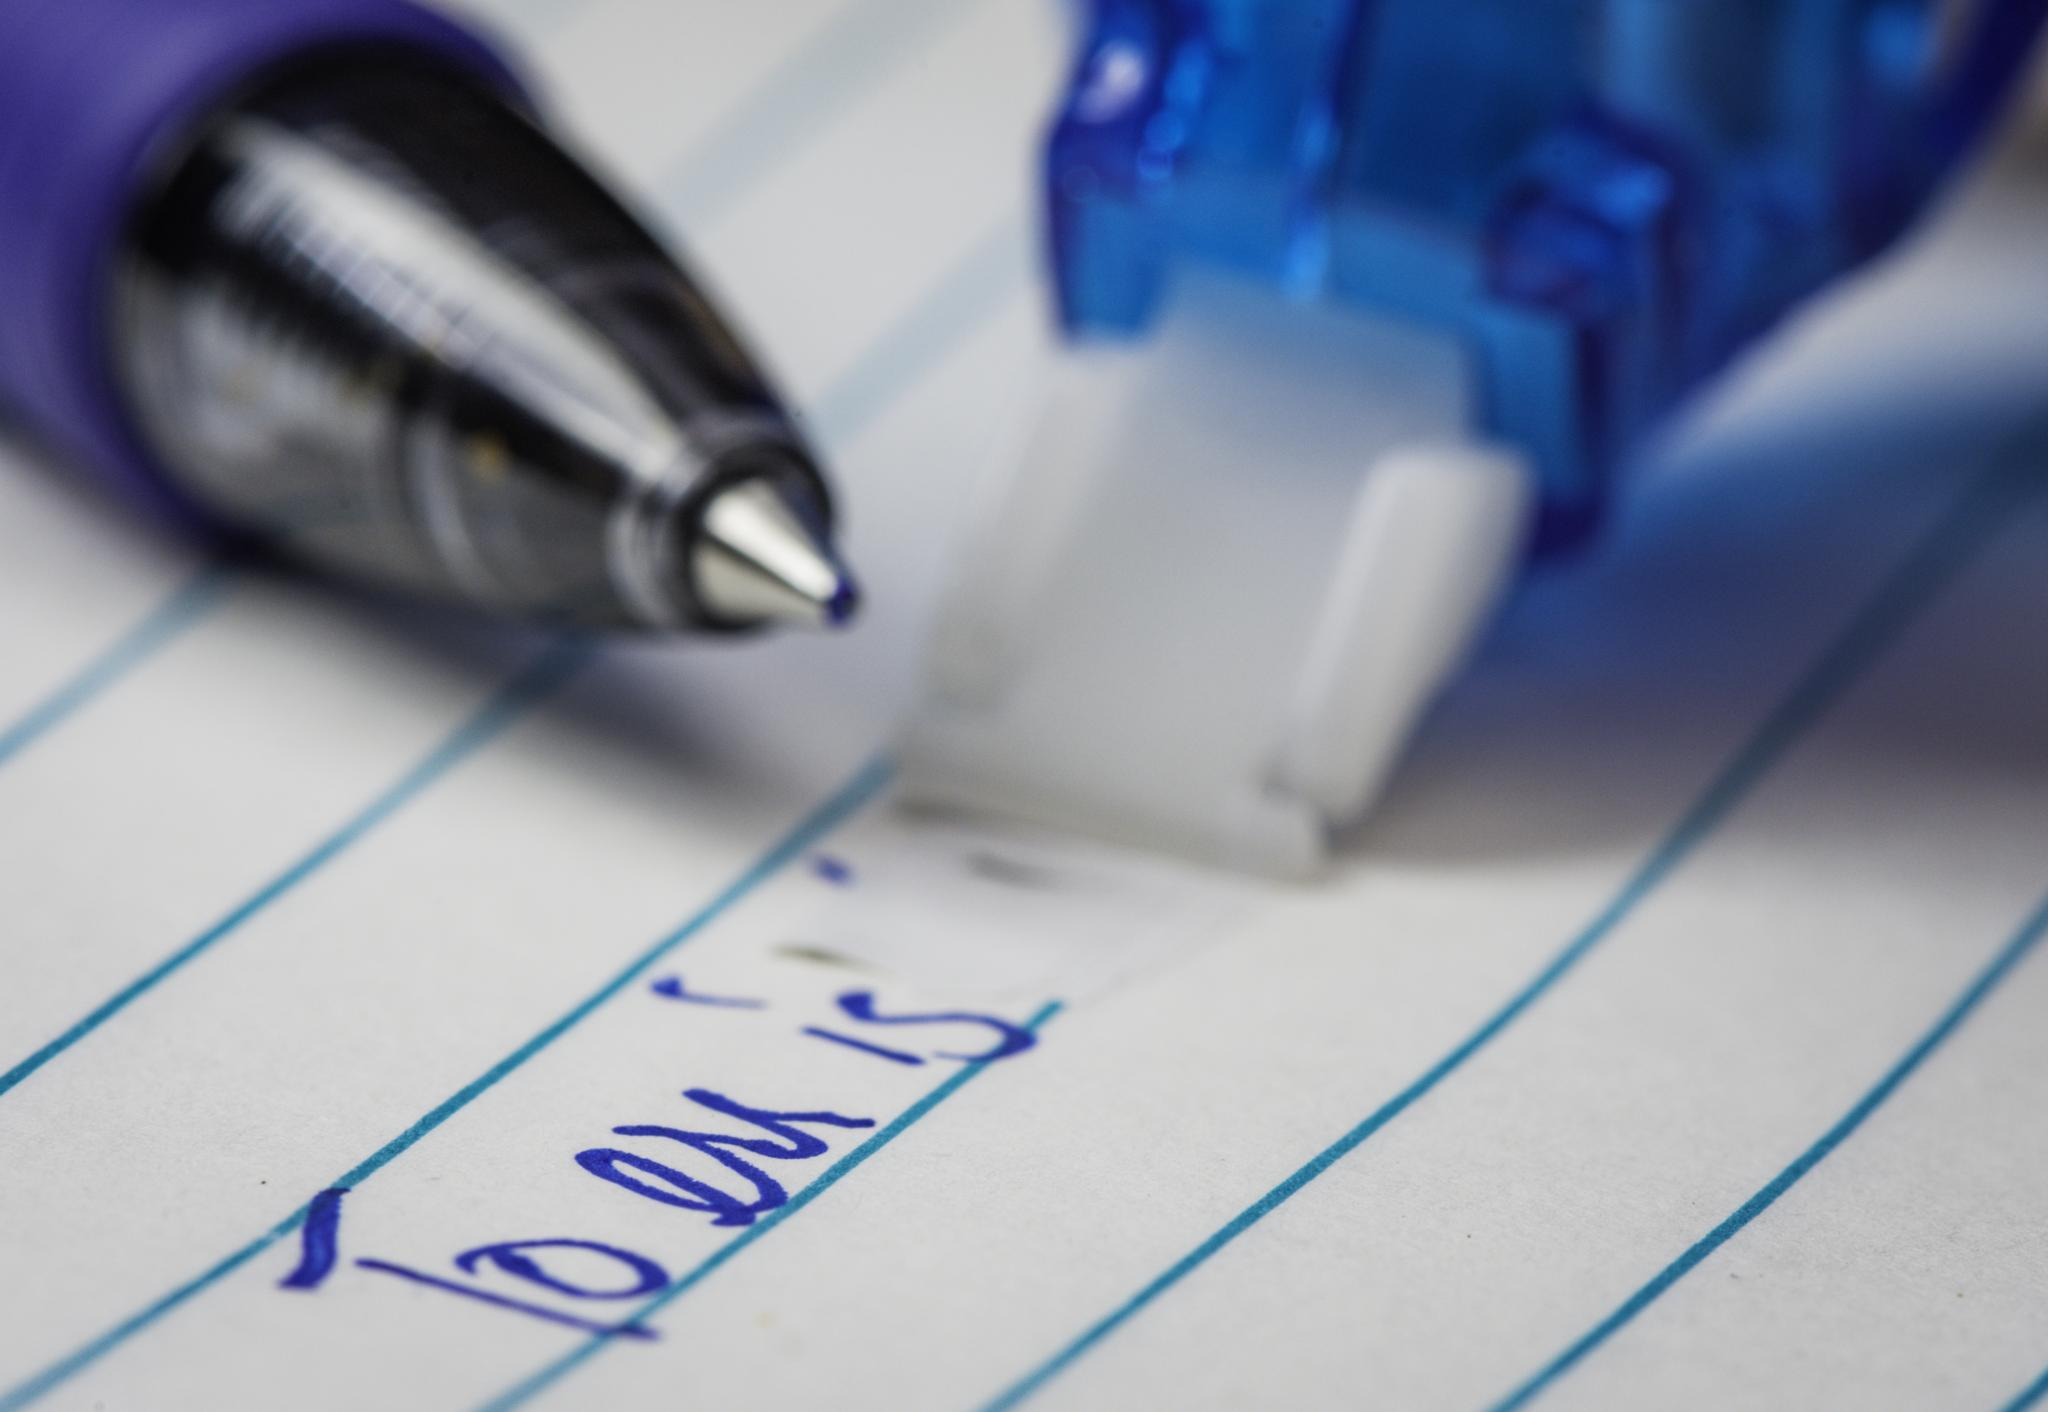 Reflections on Journal Editing: Caveats